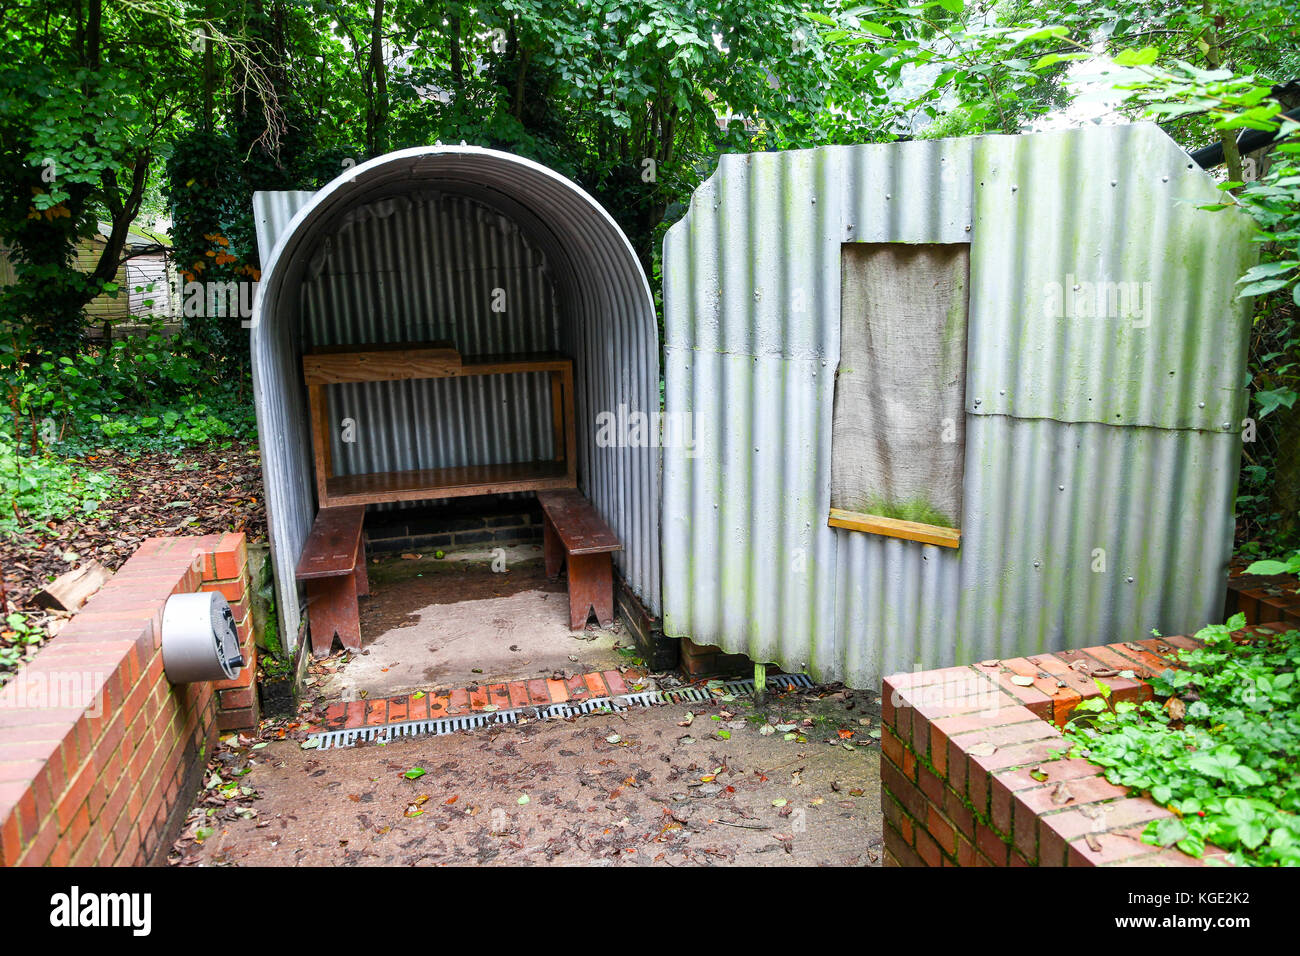 An Anderson Air Raid Shelter at the Avoncroft Museum of Buildings, Stoke Heath, Bromsgrove, Worcestershire, England, - Stock Image